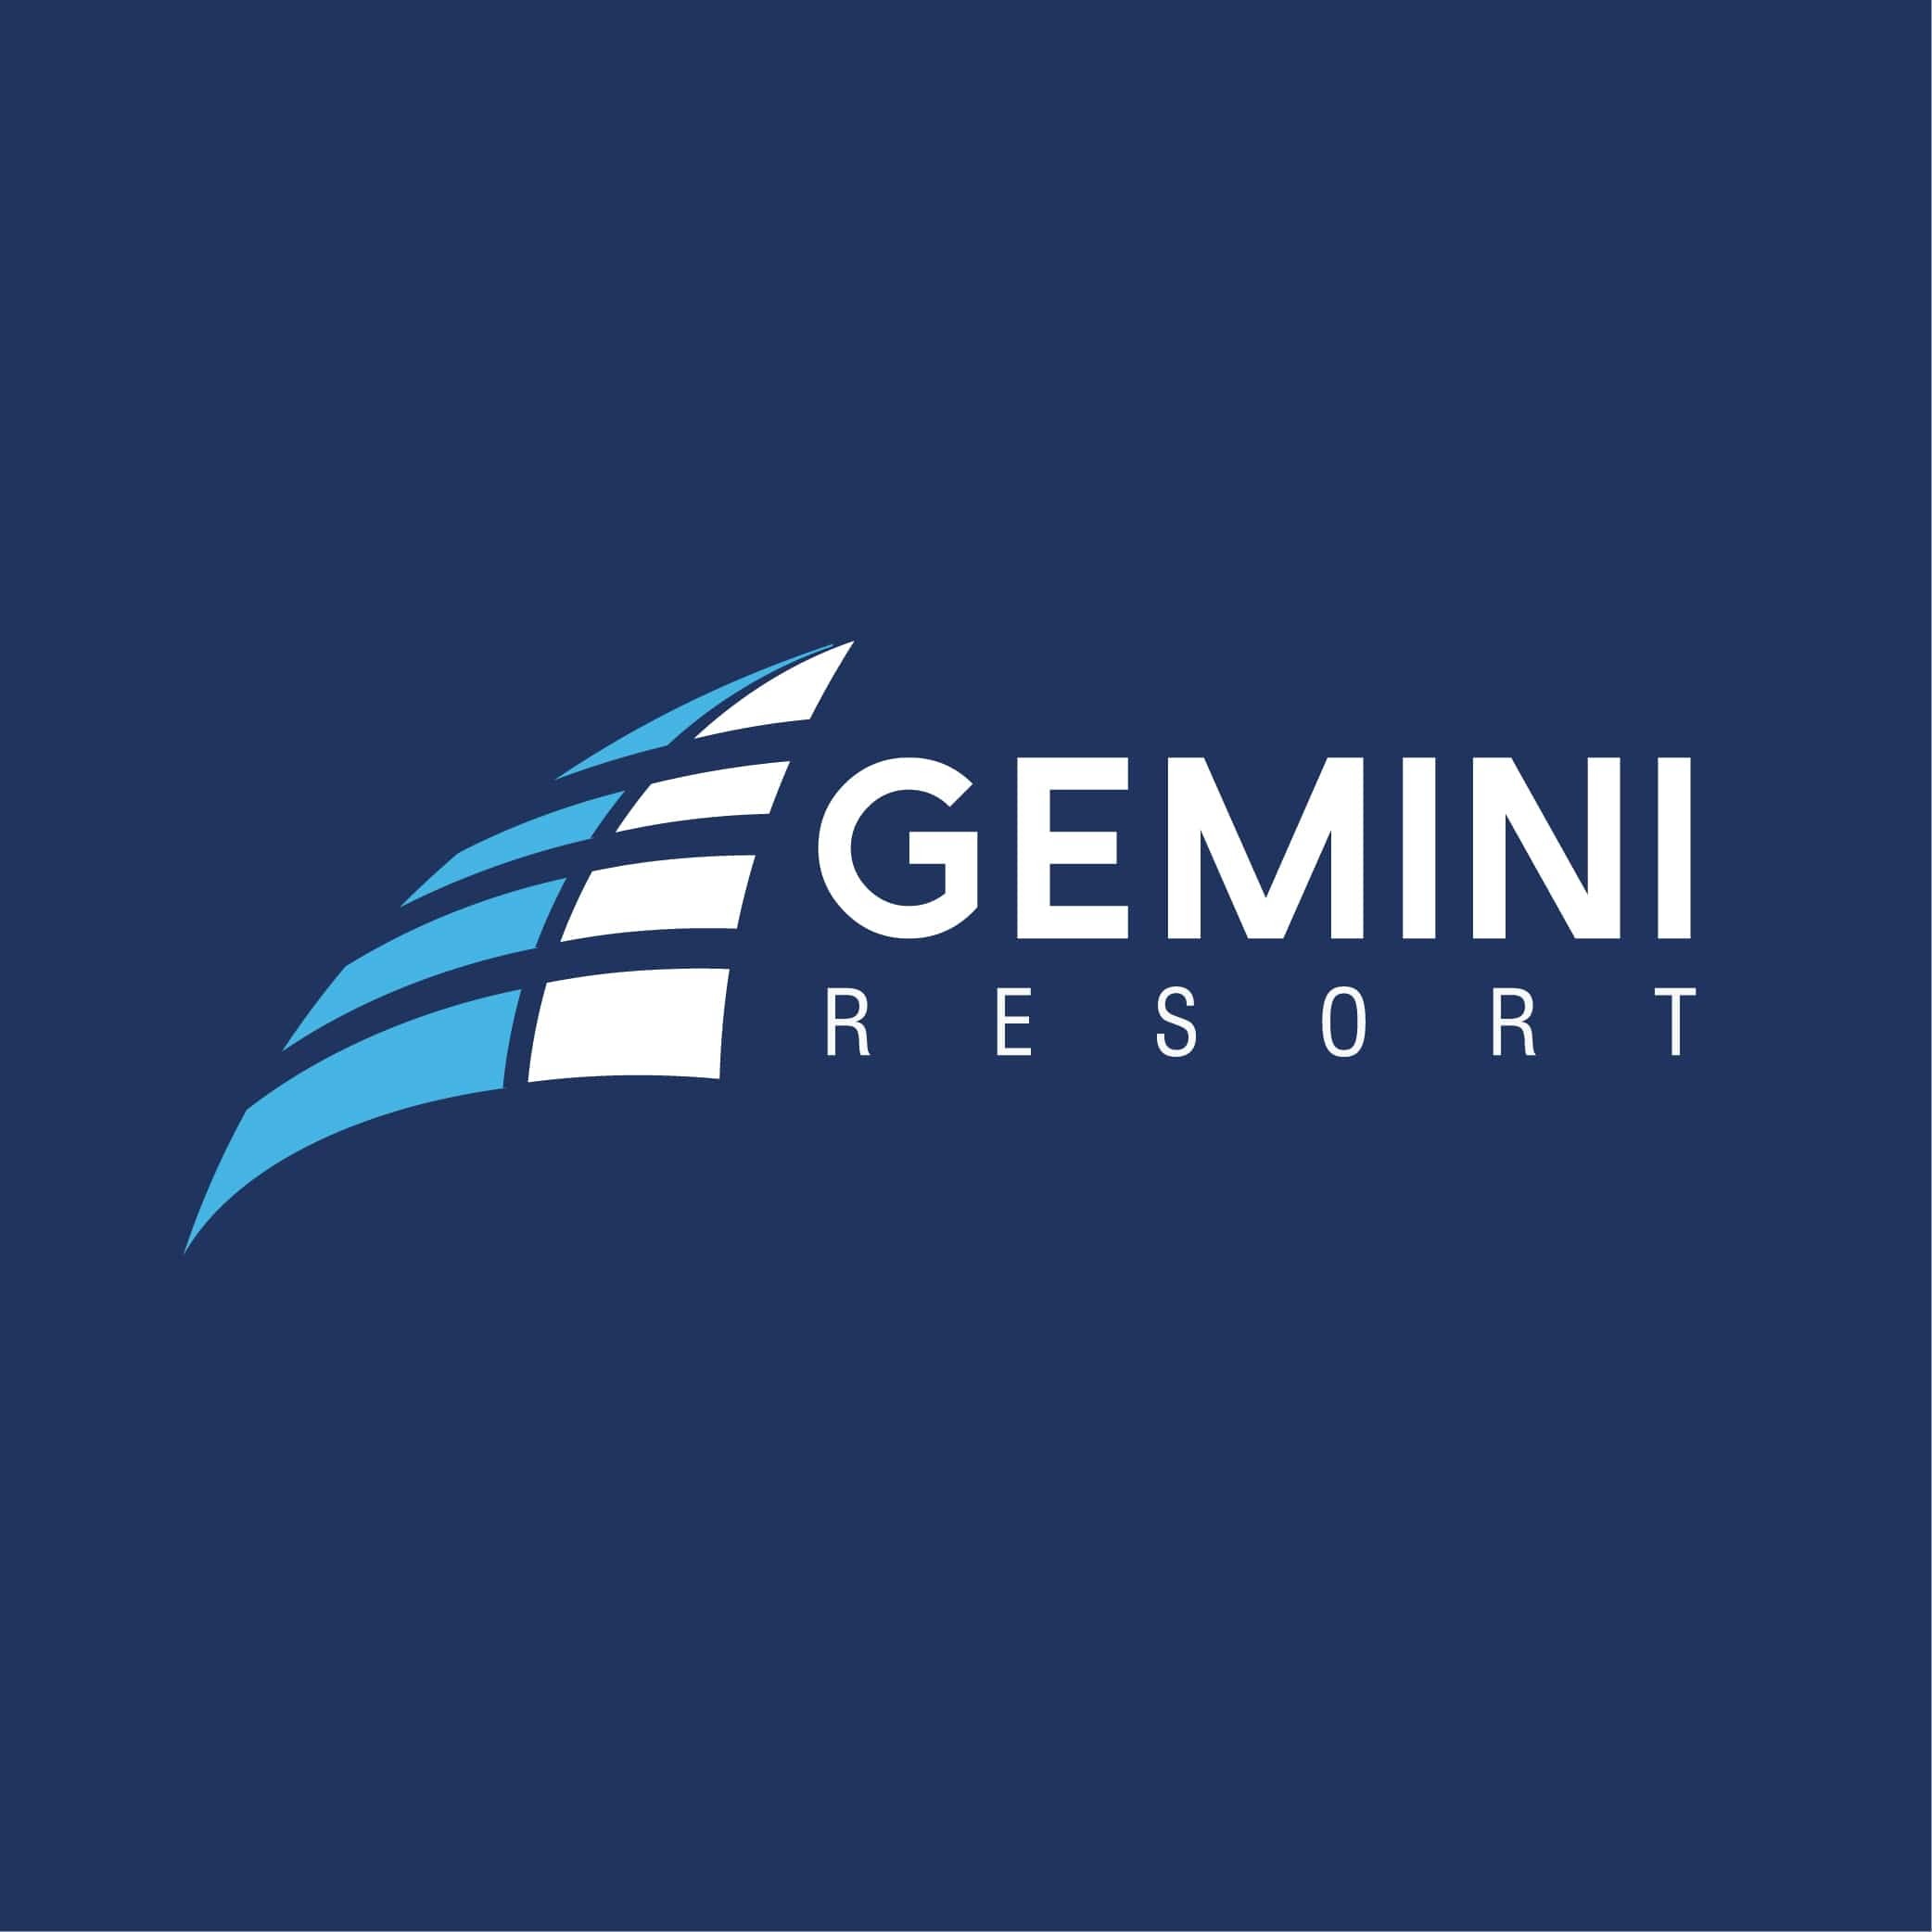 Gemini Resort Logo Design